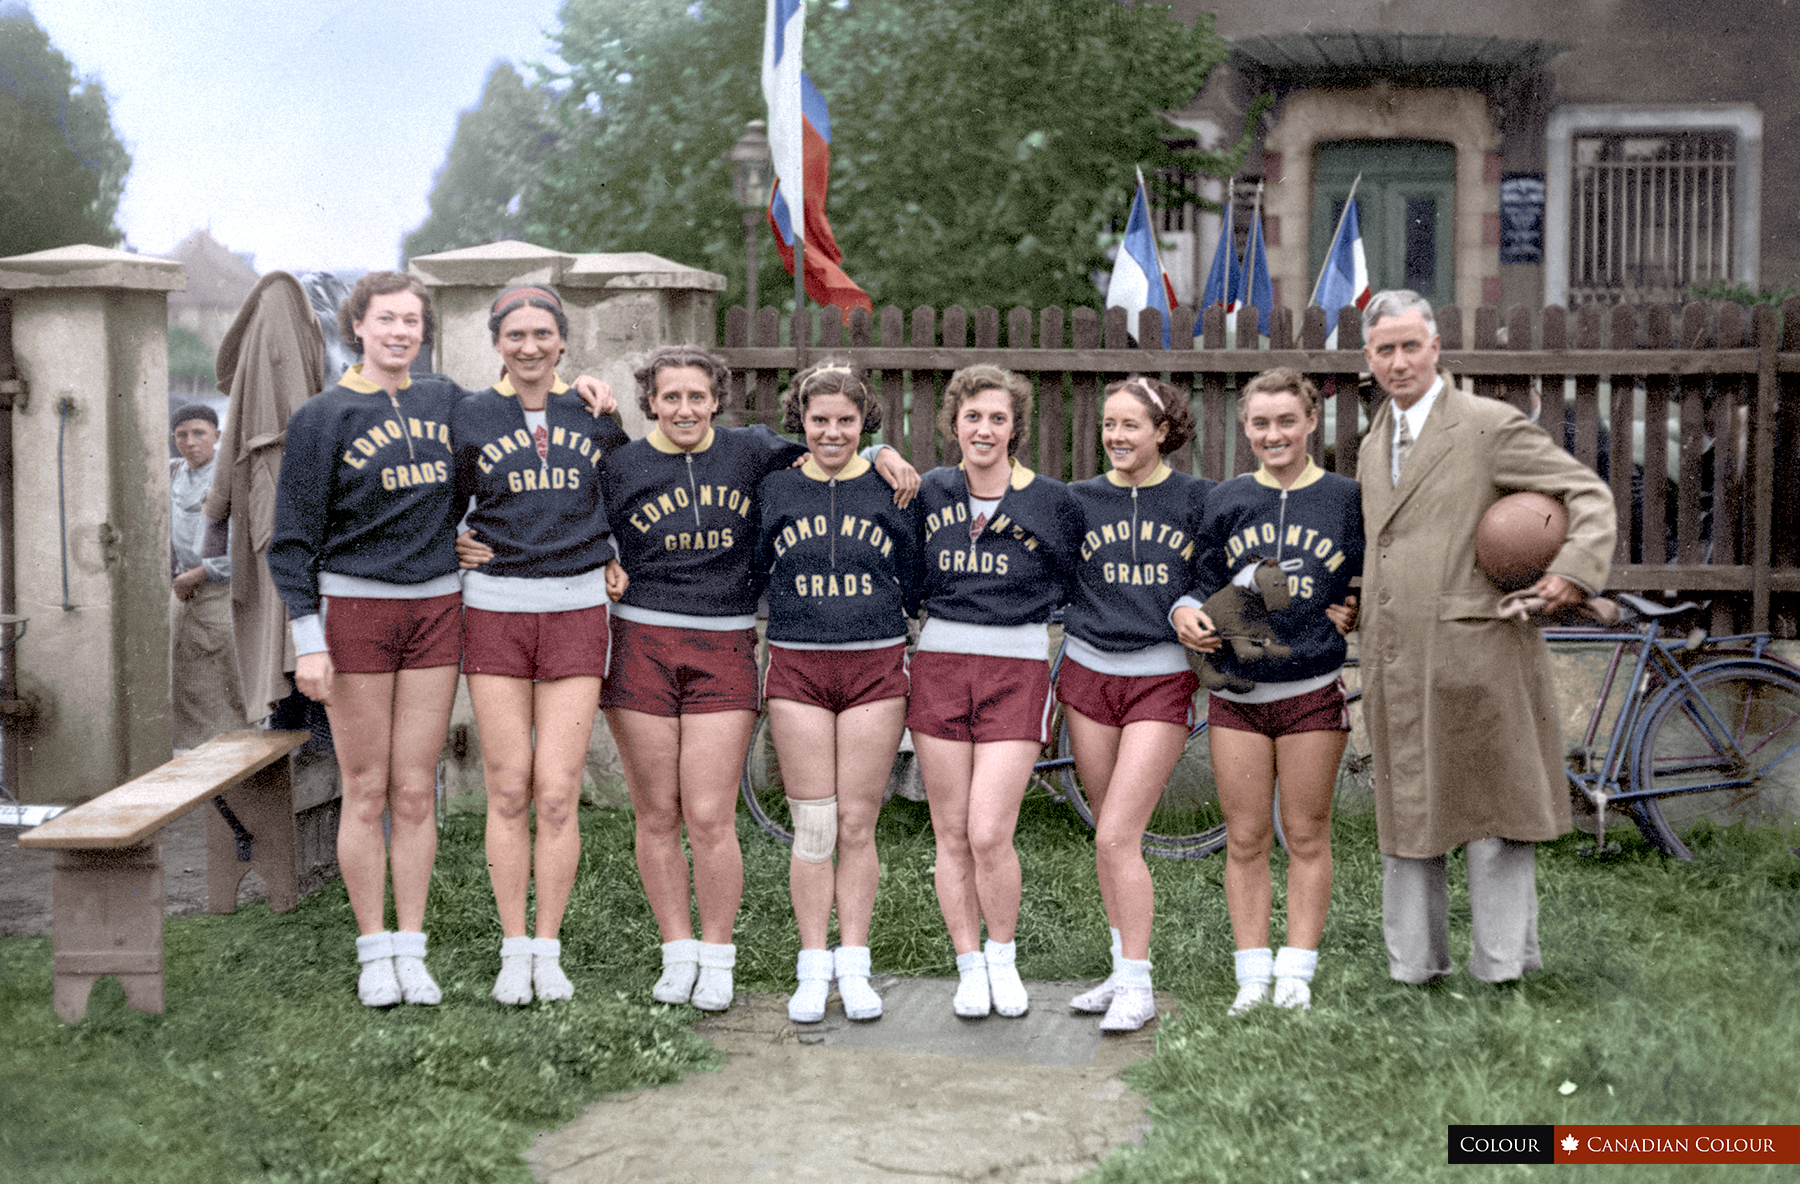 Edmonton Grads basketball team, Strasbourg, France 1936 represented Canada at the Berlin ...